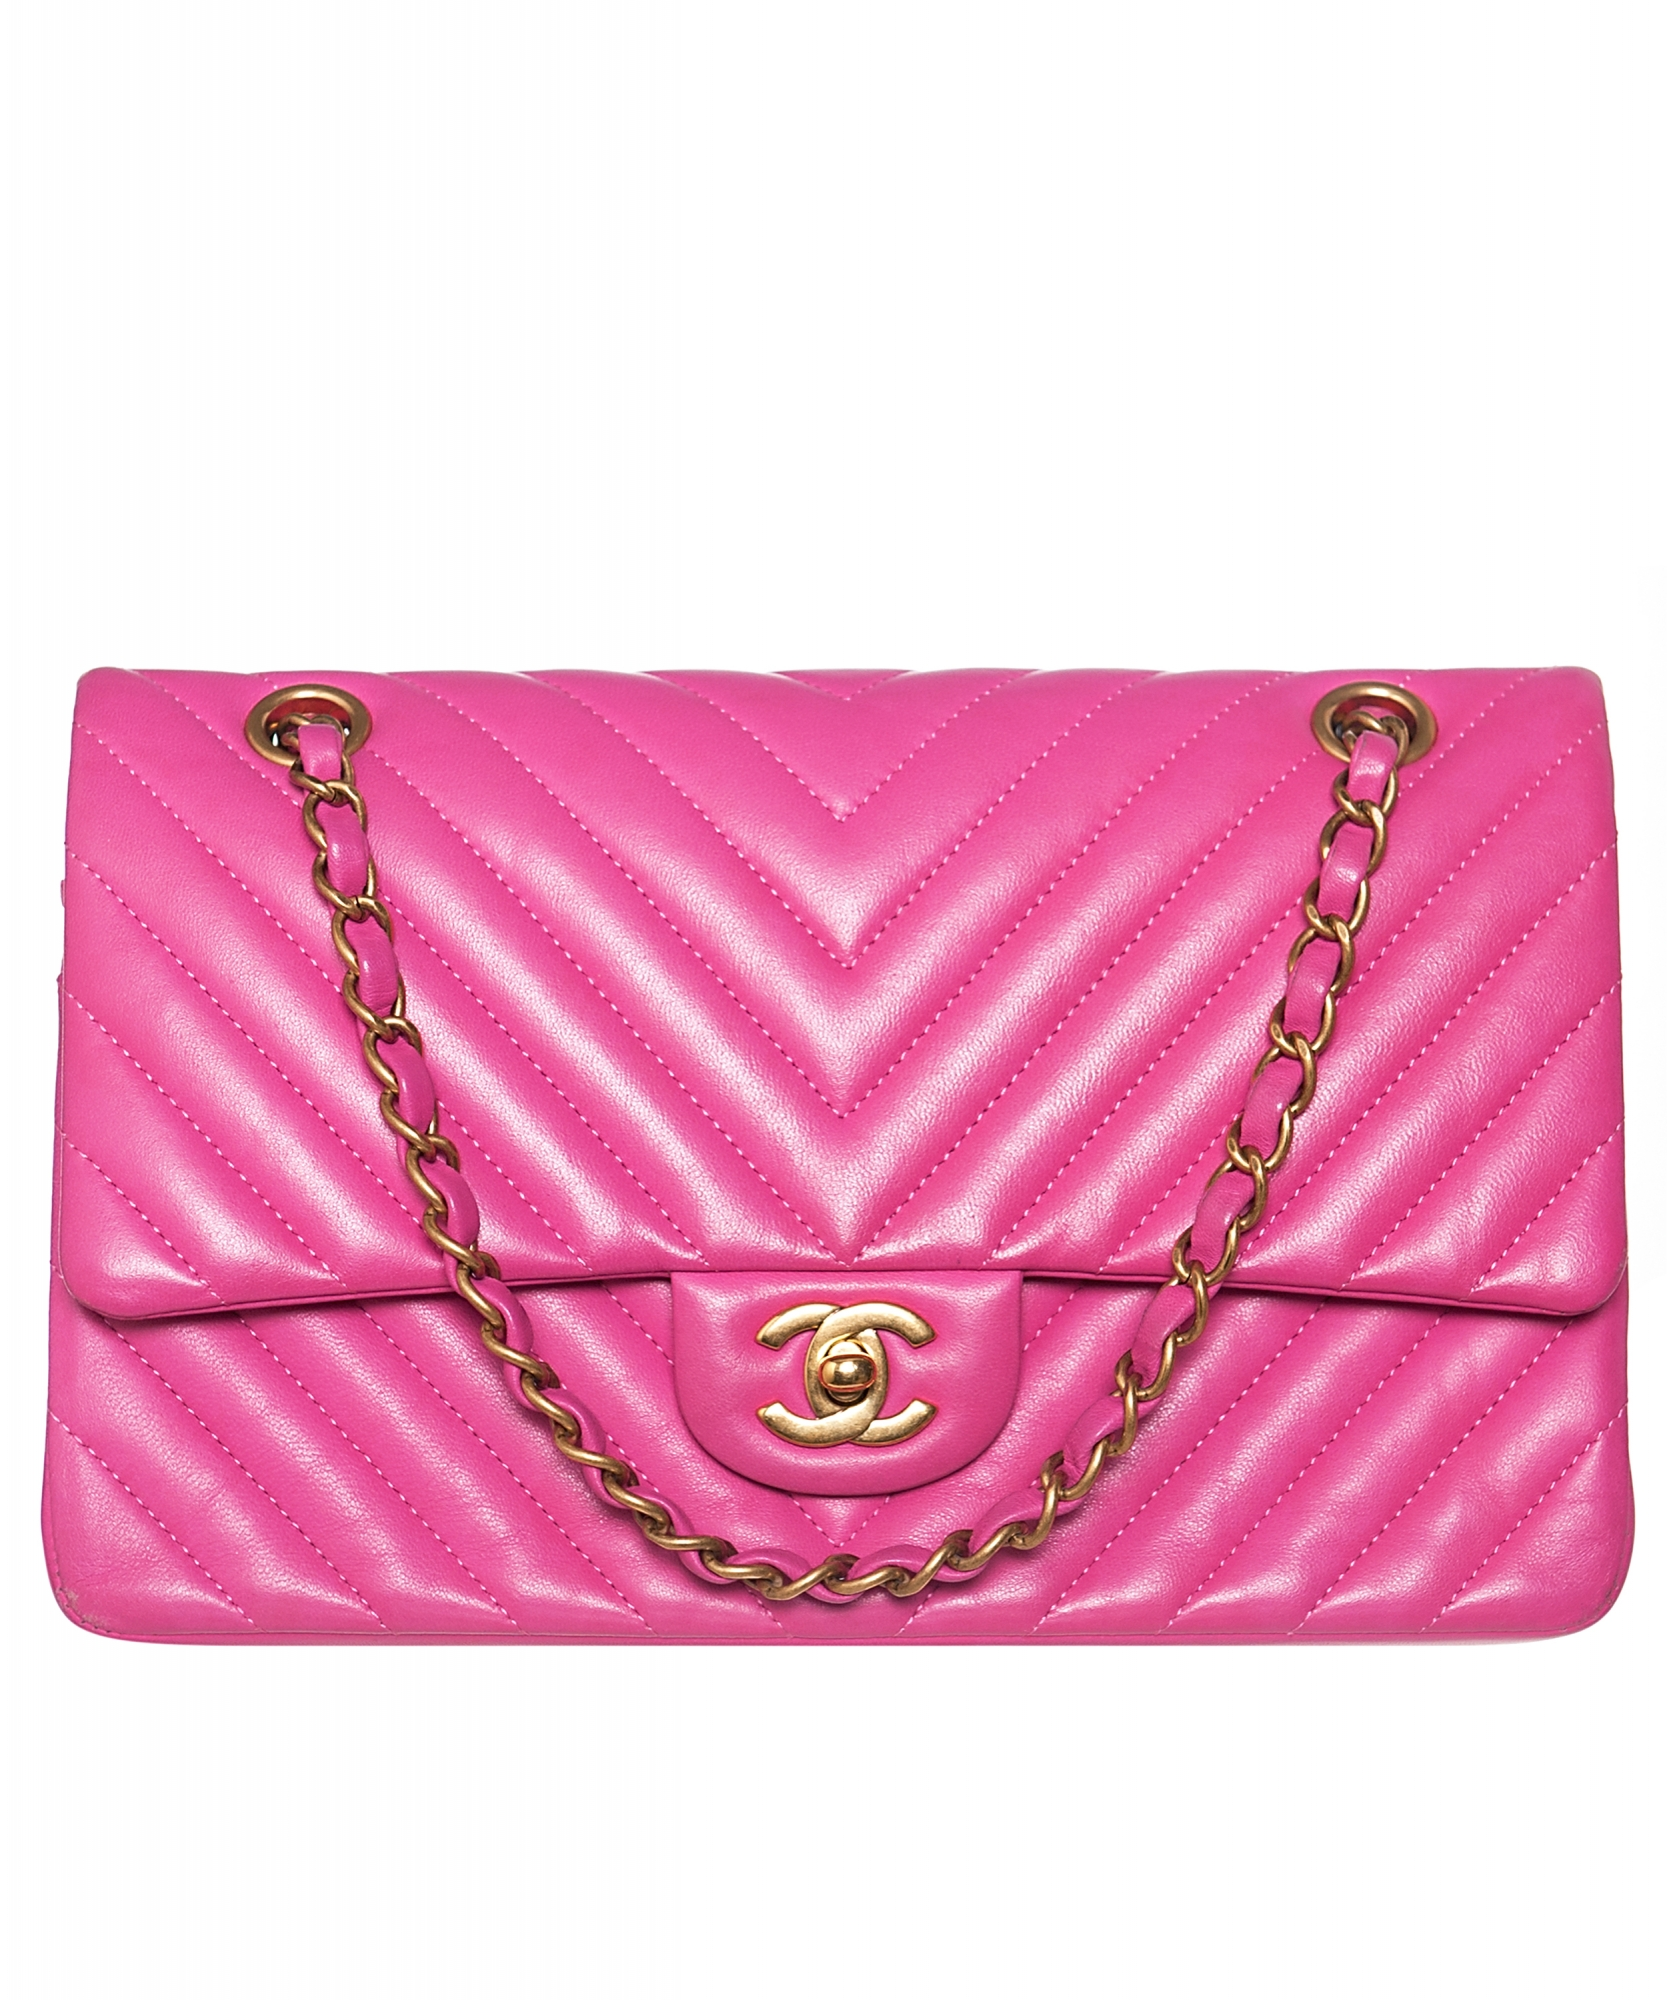 ... Shoulder Bags  Chanel Pink Quilted Chevron Leather Classic Medium  Double Flap Bag. Tap to expand e3ecd0841d0d3